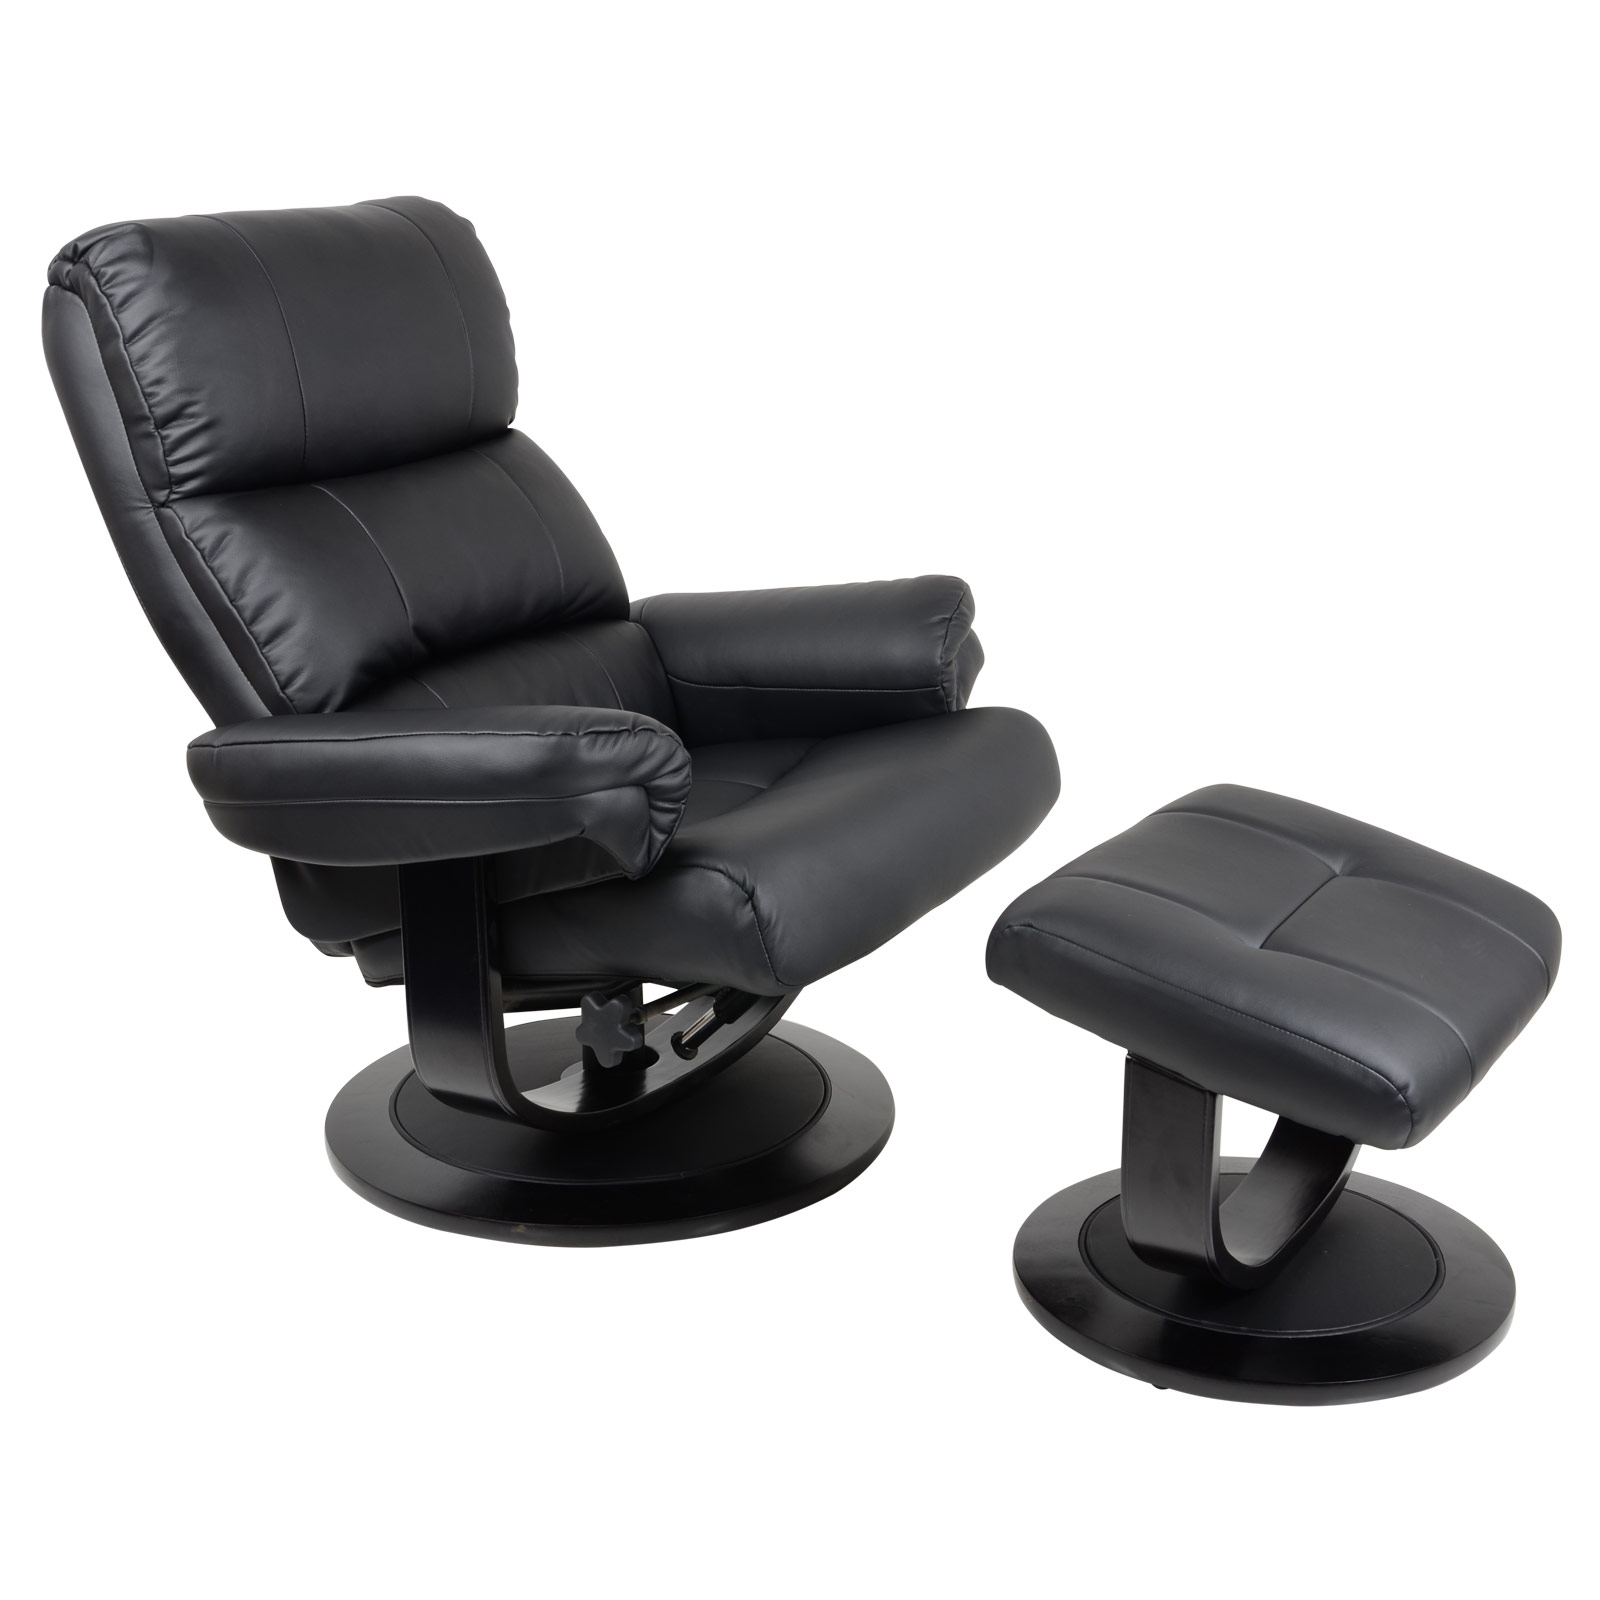 luxury black faux leather relaxer chair 360 swivel recliner armchair